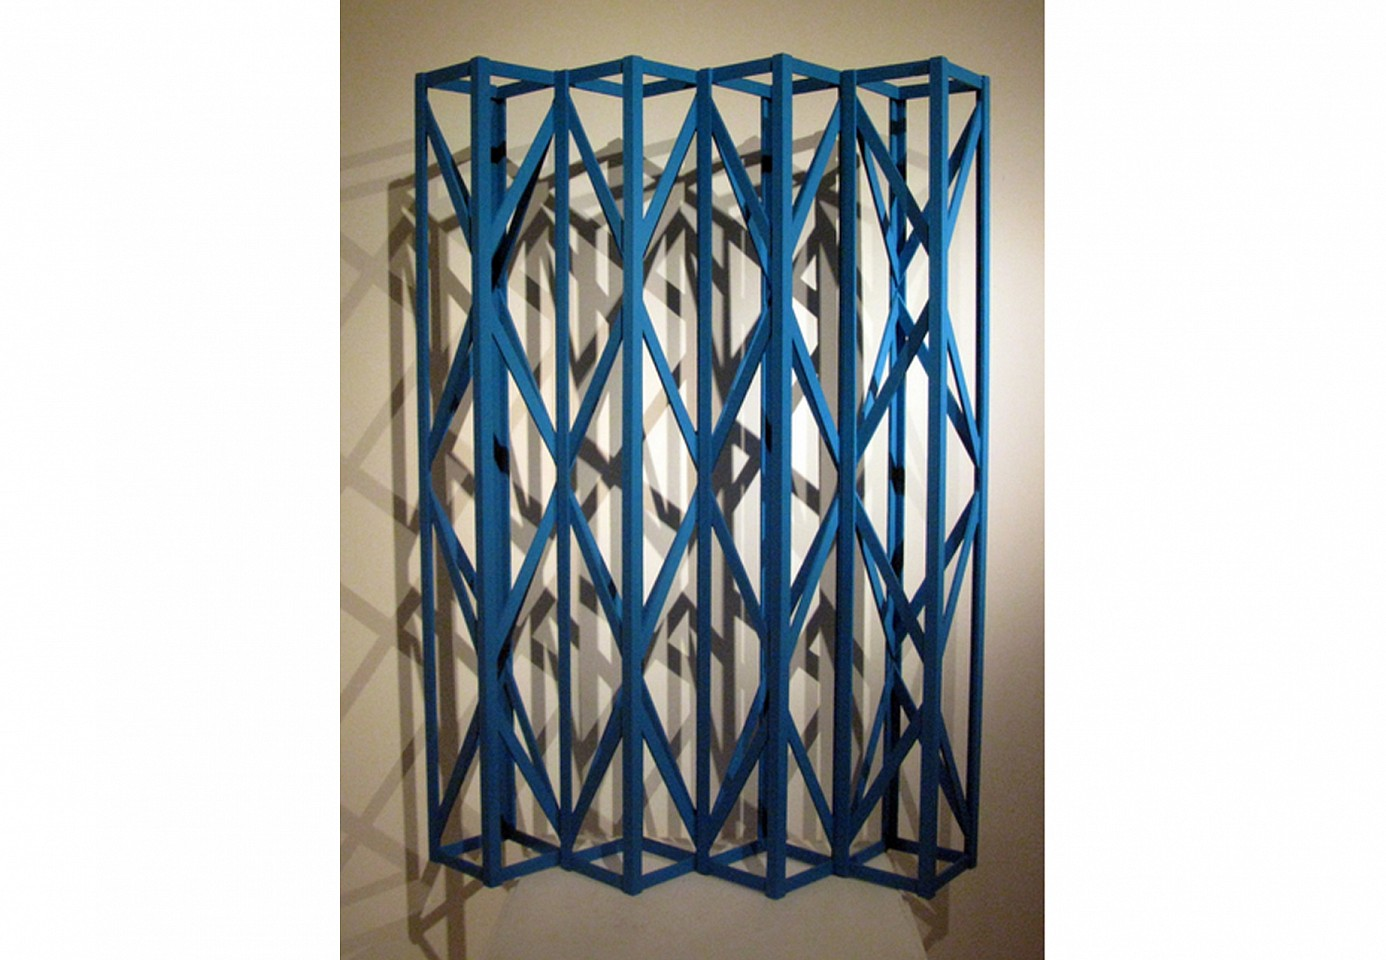 "<p><span class=""viewer-caption-artist"">Rasheed Araeen</span></p> <p><span class=""viewer-caption-title""><i>Summer Blue</i></span>, <span class=""viewer-caption-year"">1985-2014</span></p> <p><span class=""viewer-caption-media"">Painted wood</span></p> <p><span class=""viewer-caption-dimensions"">77 x 56 x 15 cm (30 5/16 x 22 x 5 7/8 in.)</span></p> <p><span class=""viewer-caption-inventory"">RAA0000</span></p> <p><span class=""viewer-caption-aux""></span></p>"